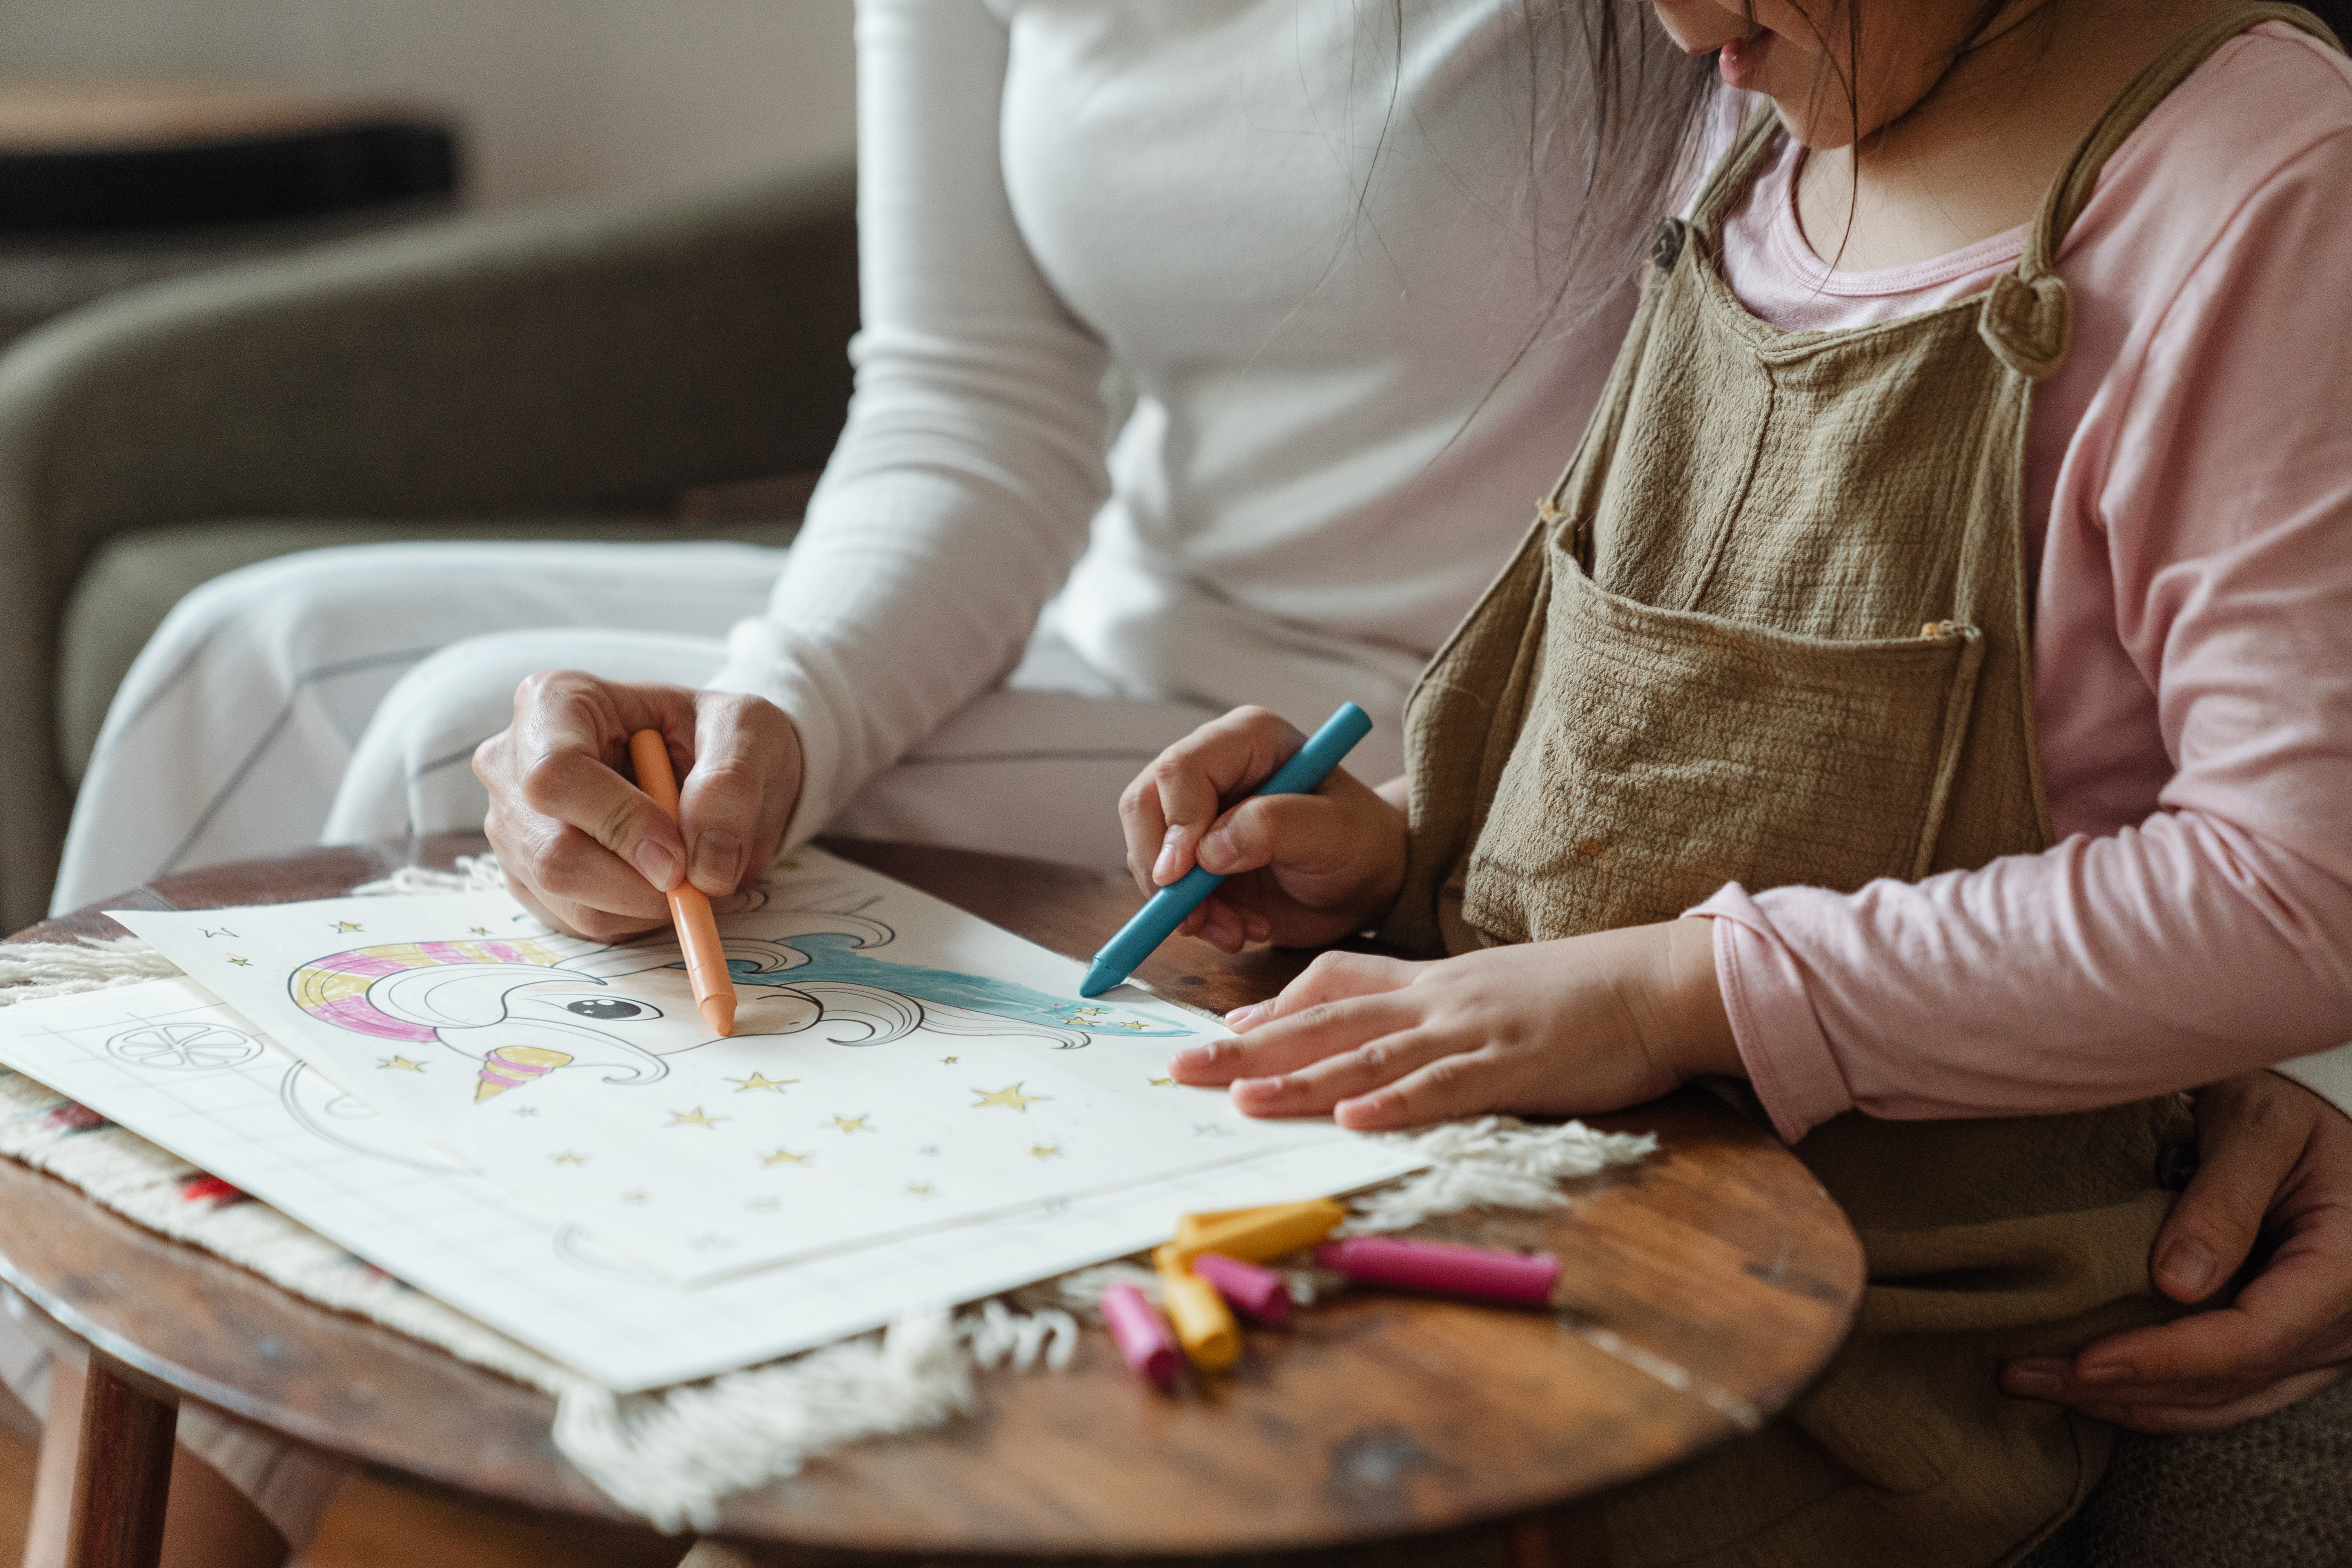 crop-mother-and-daughter-coloring-drawing-together-on-coffee-4473993